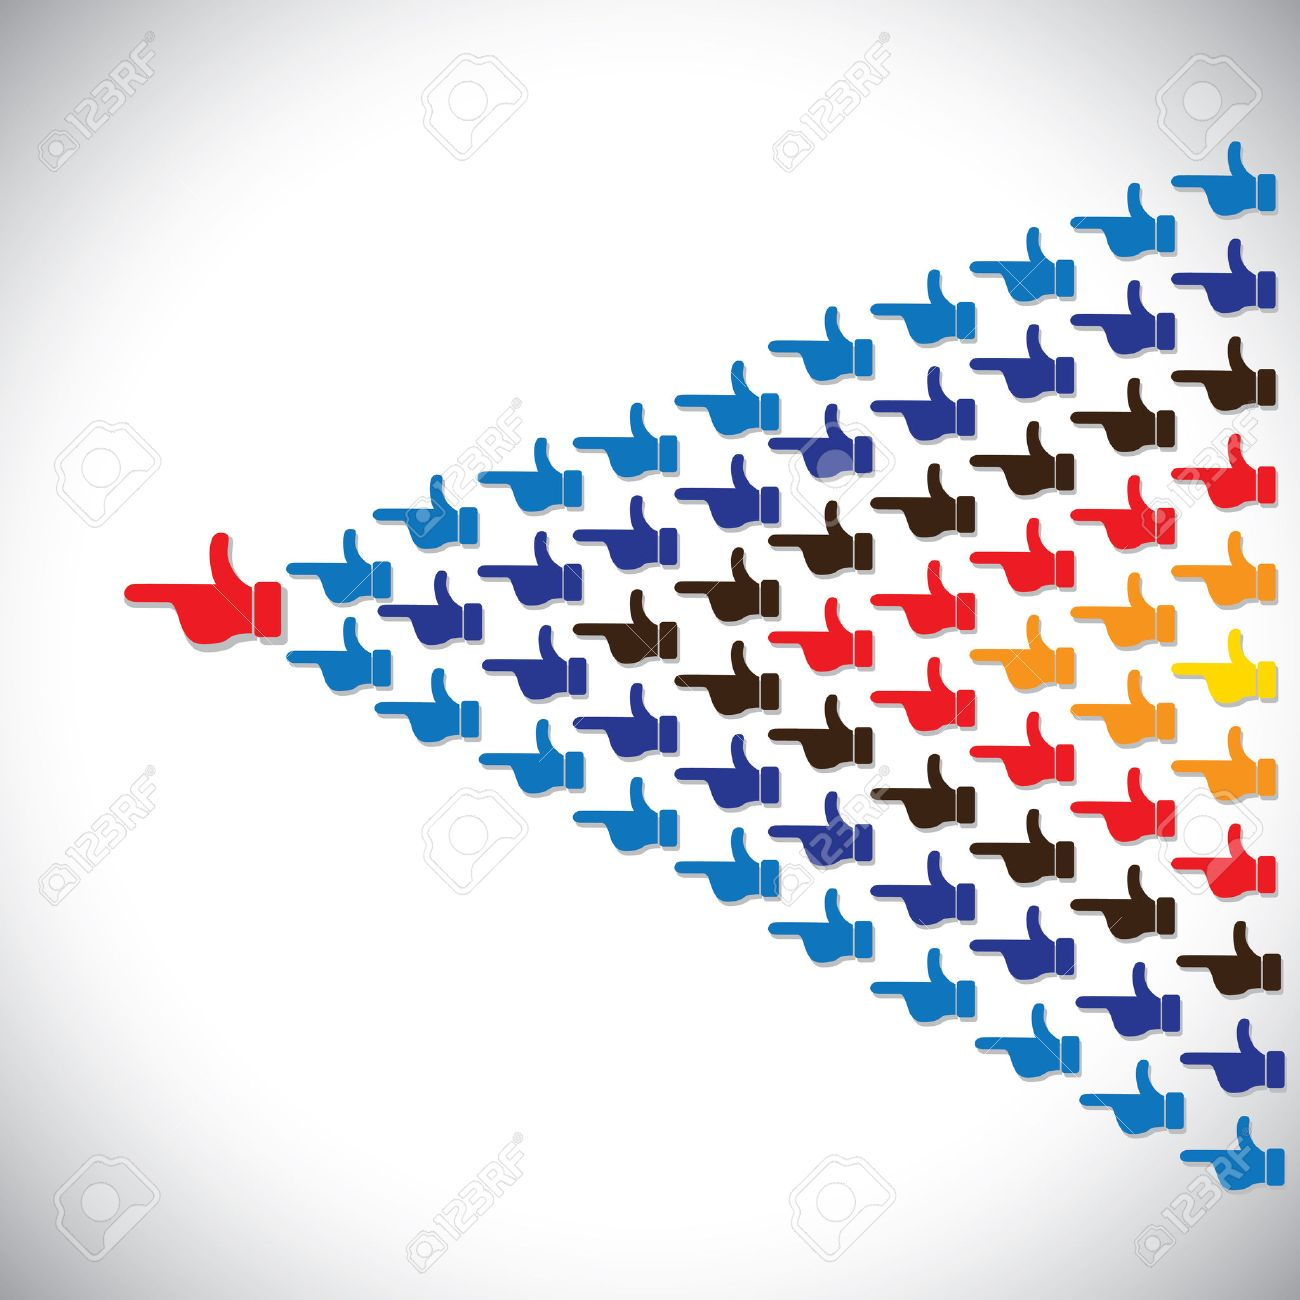 example icon stock photos images royalty example icon images example icon people hands together as arrow leadership concept vector this graphic icon